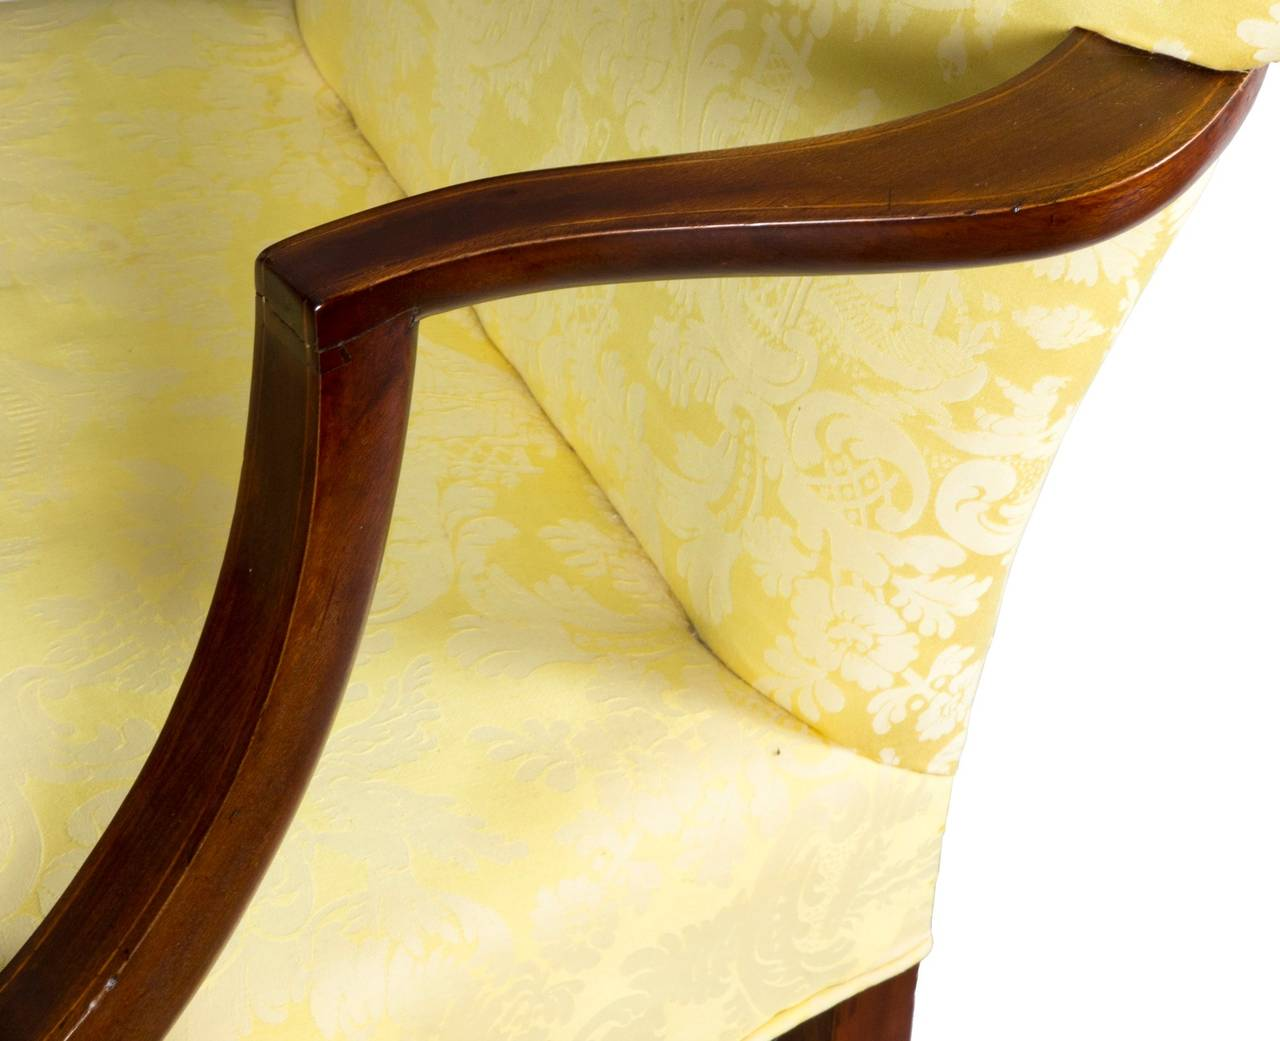 This israel sack american federal mahogany antique lolling arm chair - Chippendale Lolling Chair With String Inlay Probably New Hampshire Circa 1780 2